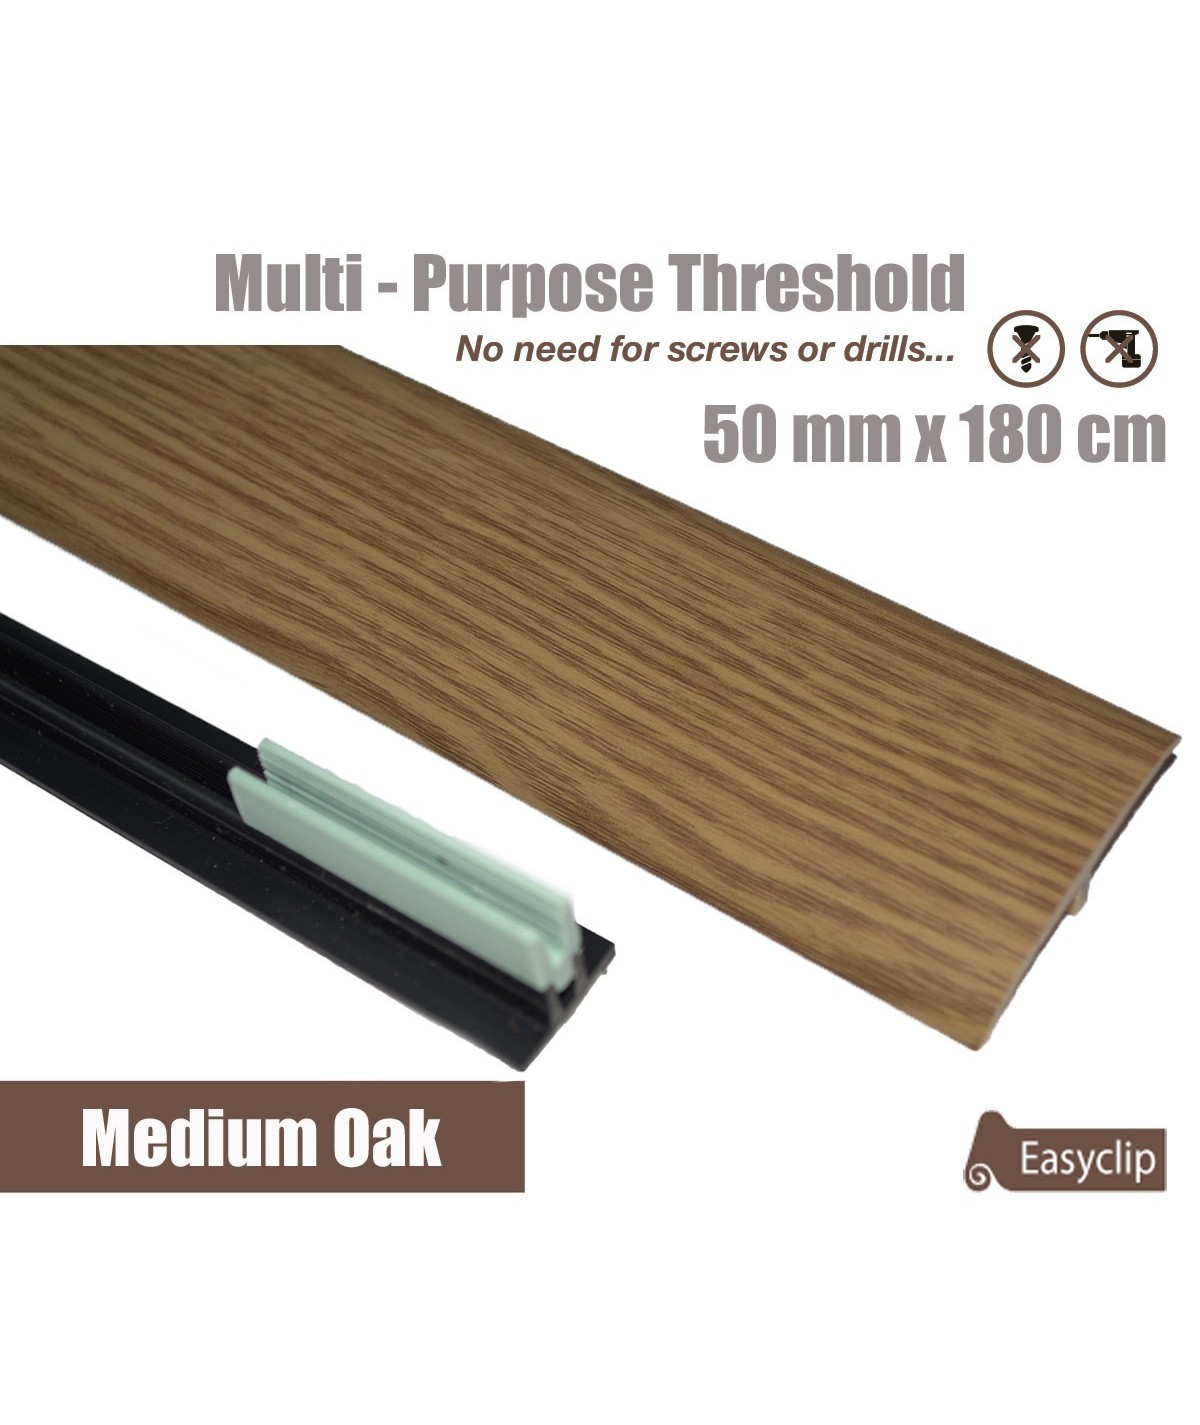 Medium Oak Laminated Transition Threshold Strip 50mm x180cm Multi-Height/Pivots